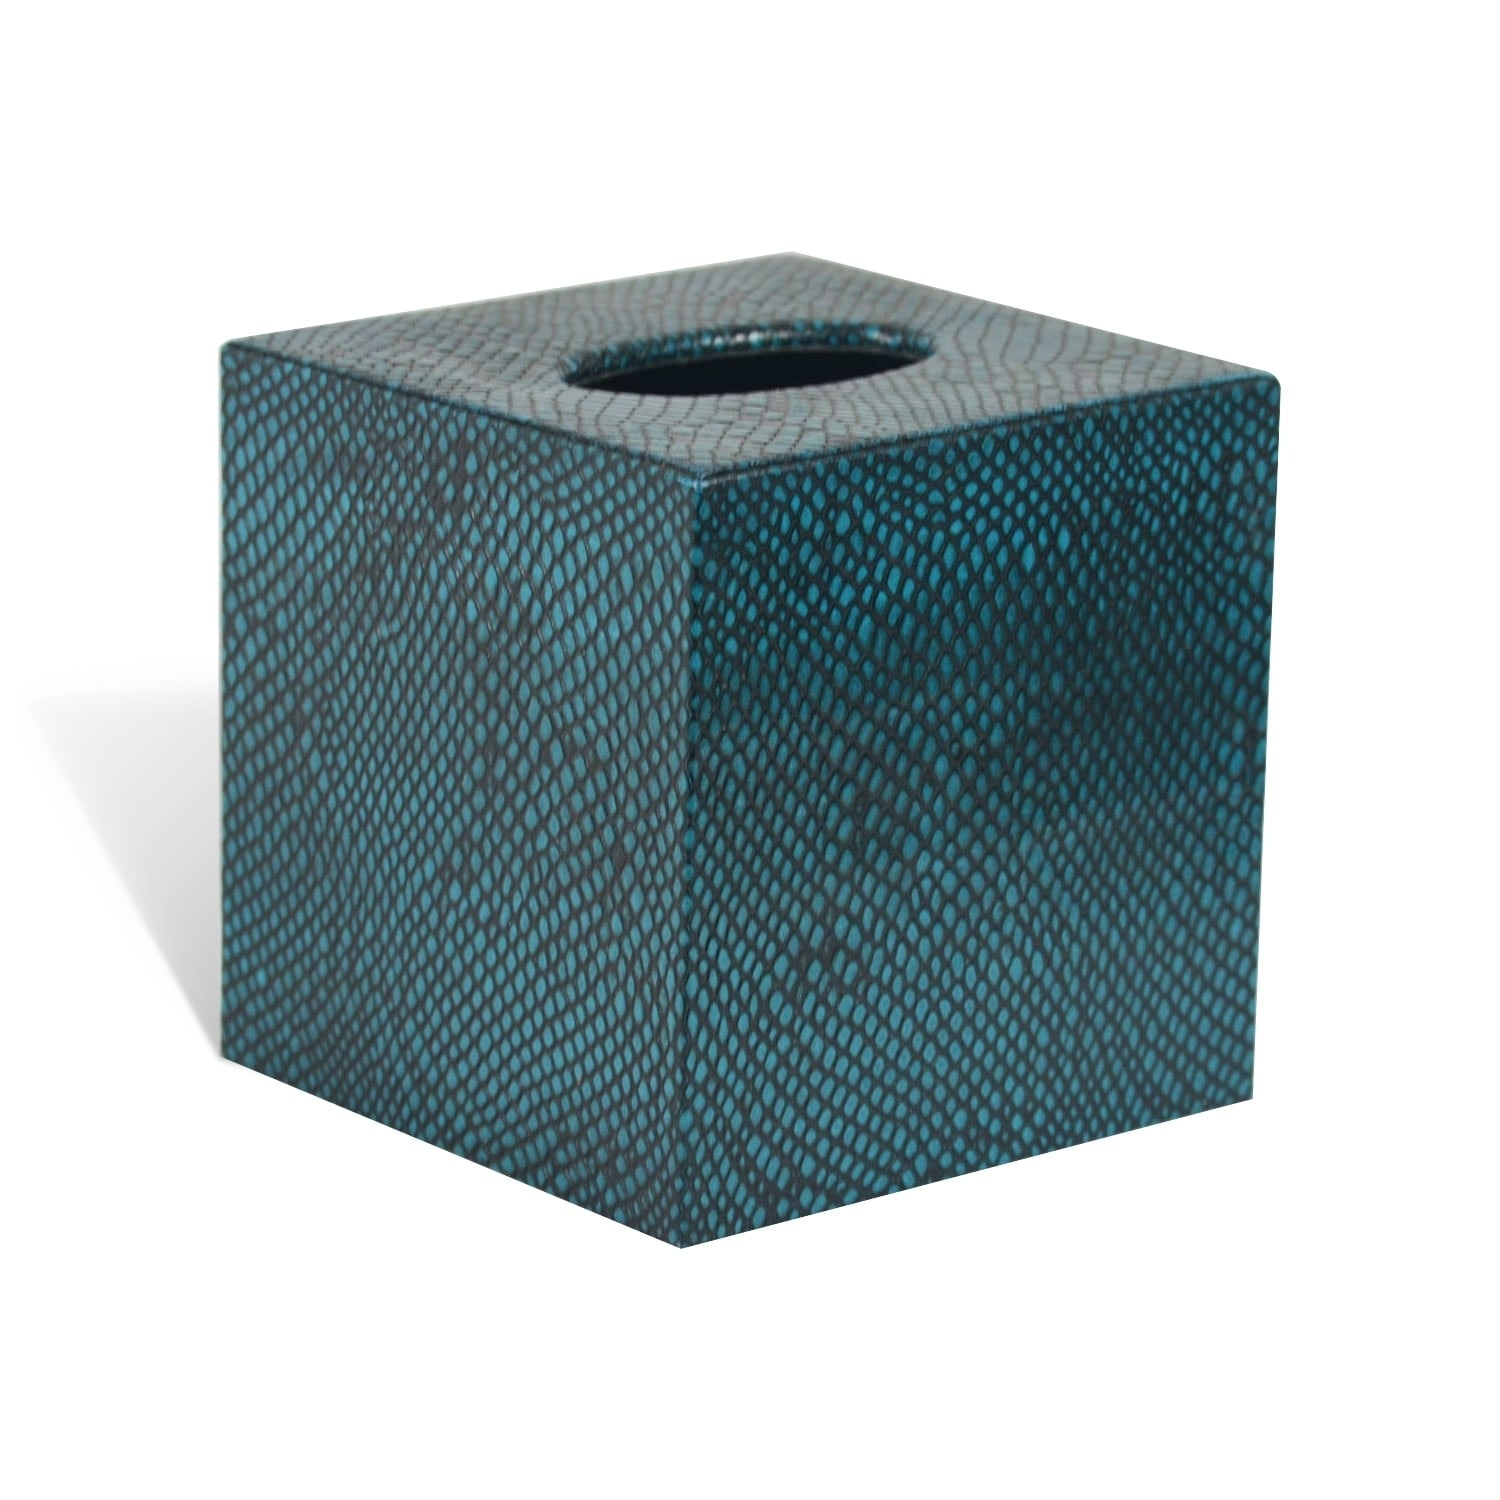 Shop Genuine Leather Tissue Box Cover for Vanity Countertop, Teal ...